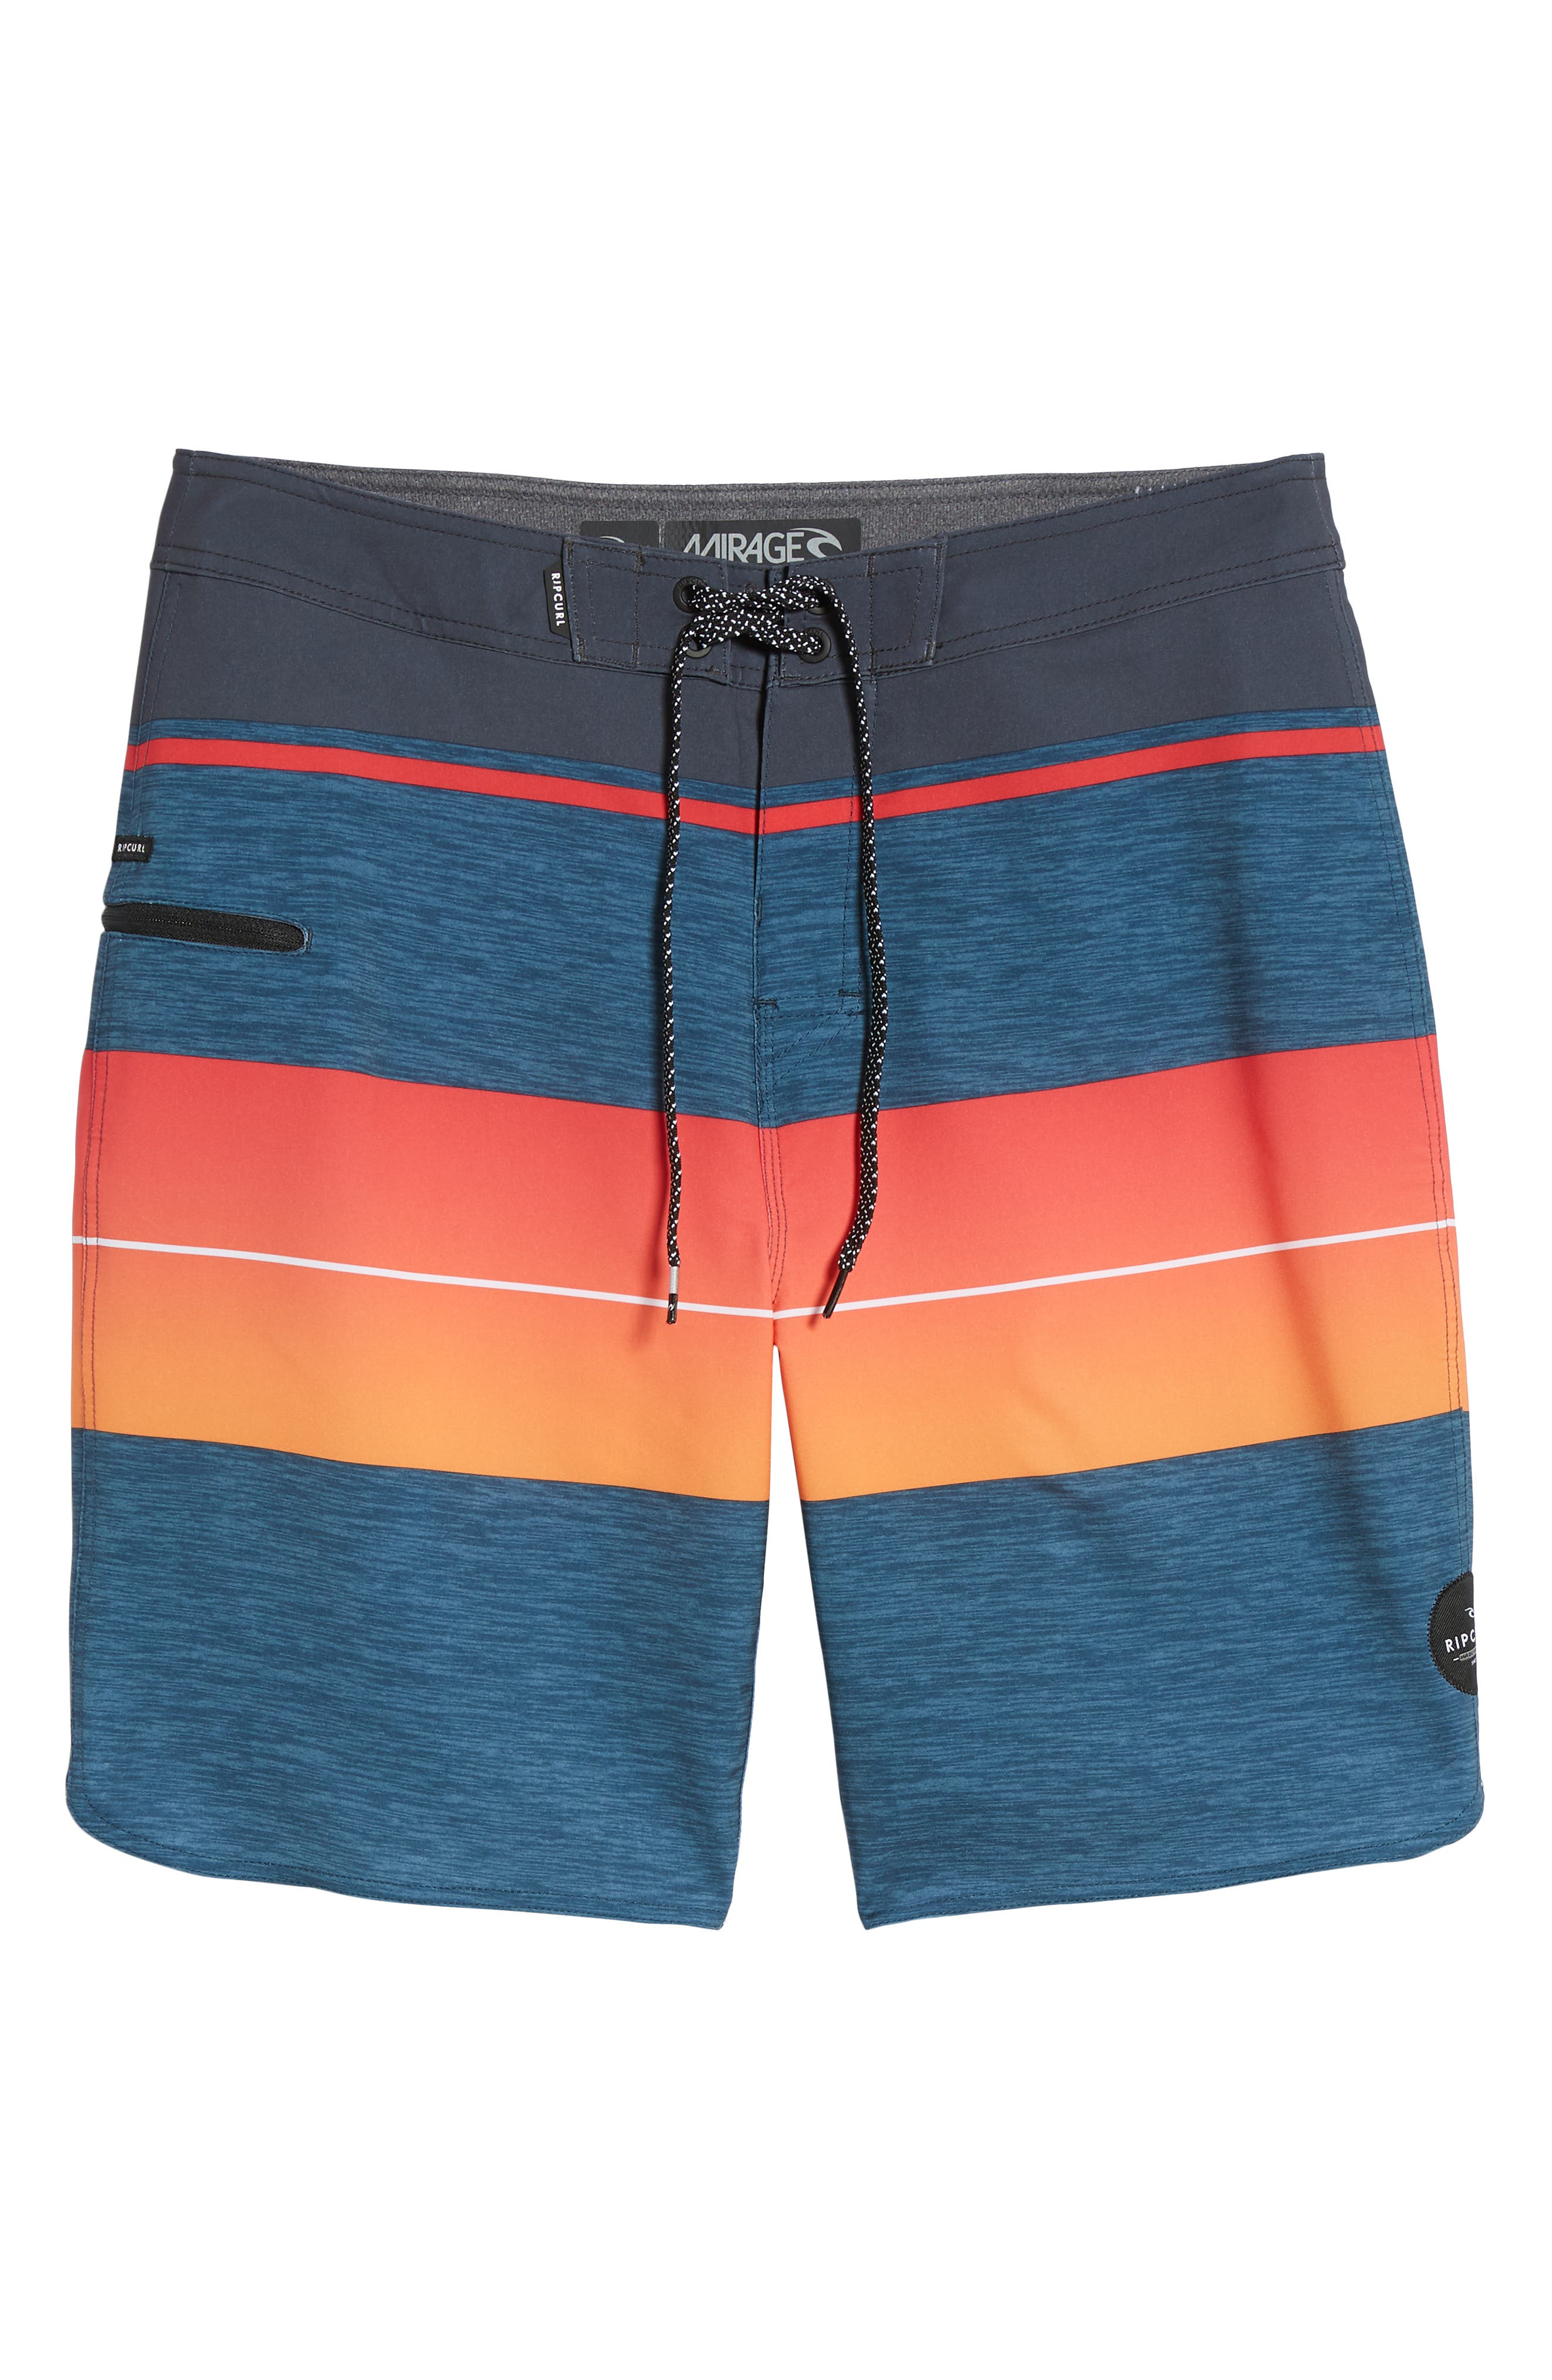 Mirage Eclipse Board Shorts,                             Alternate thumbnail 12, color,